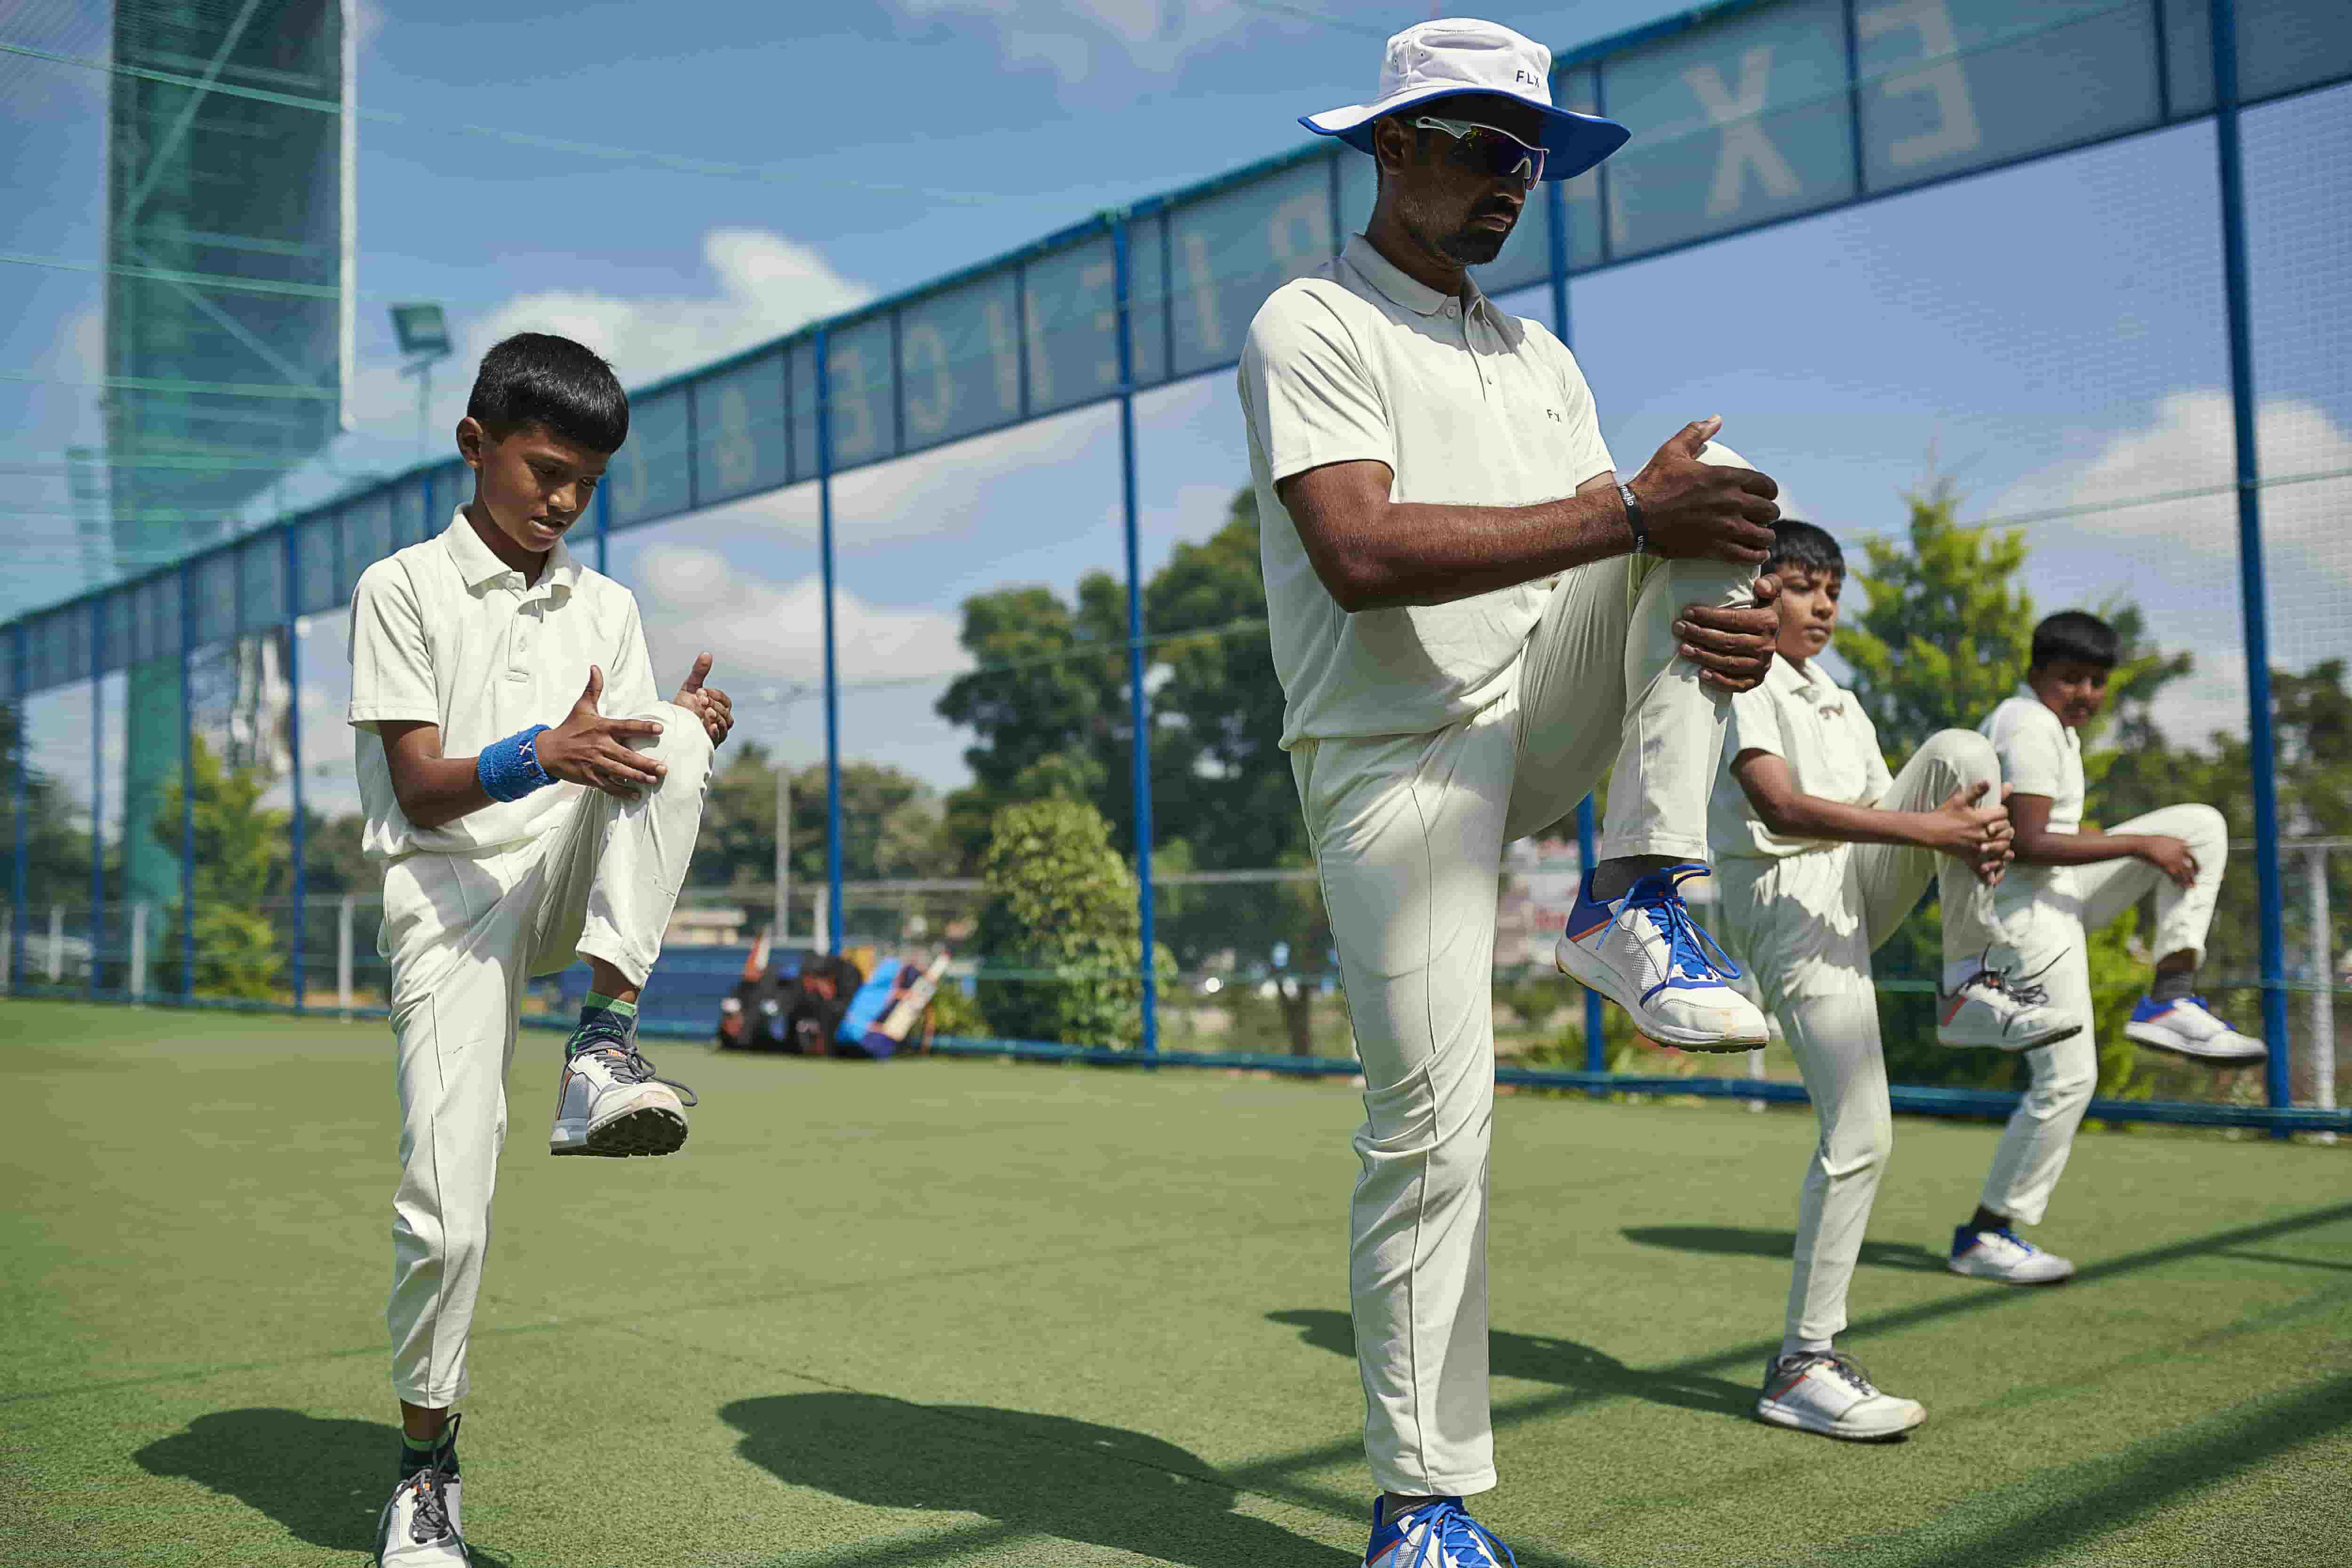 Cricket: Is your Child Training the Right Way?